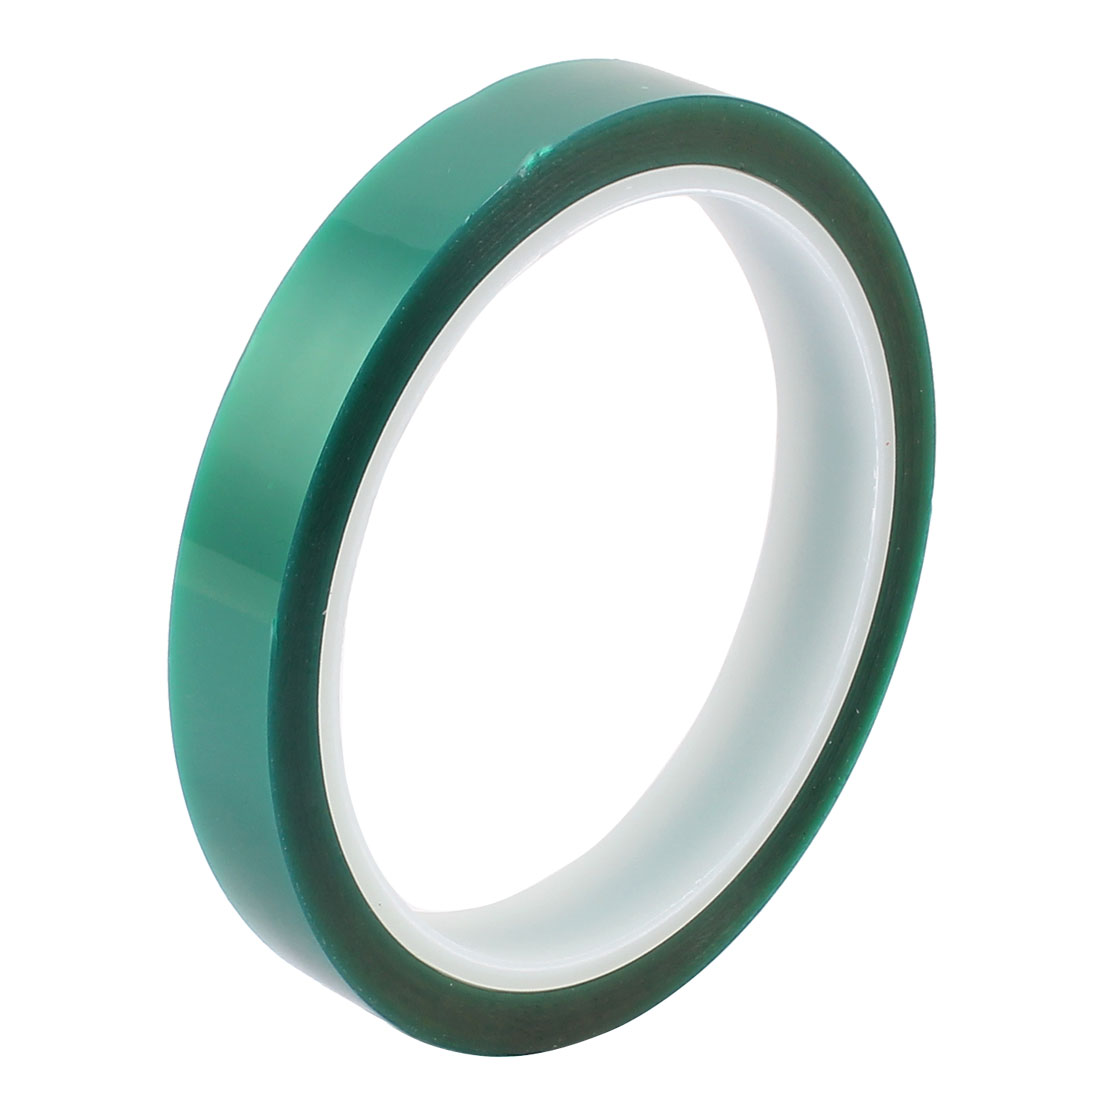 15mm Width 33 Meters Long Green PET High Temperature Heat Resistant PCB Solder Tape